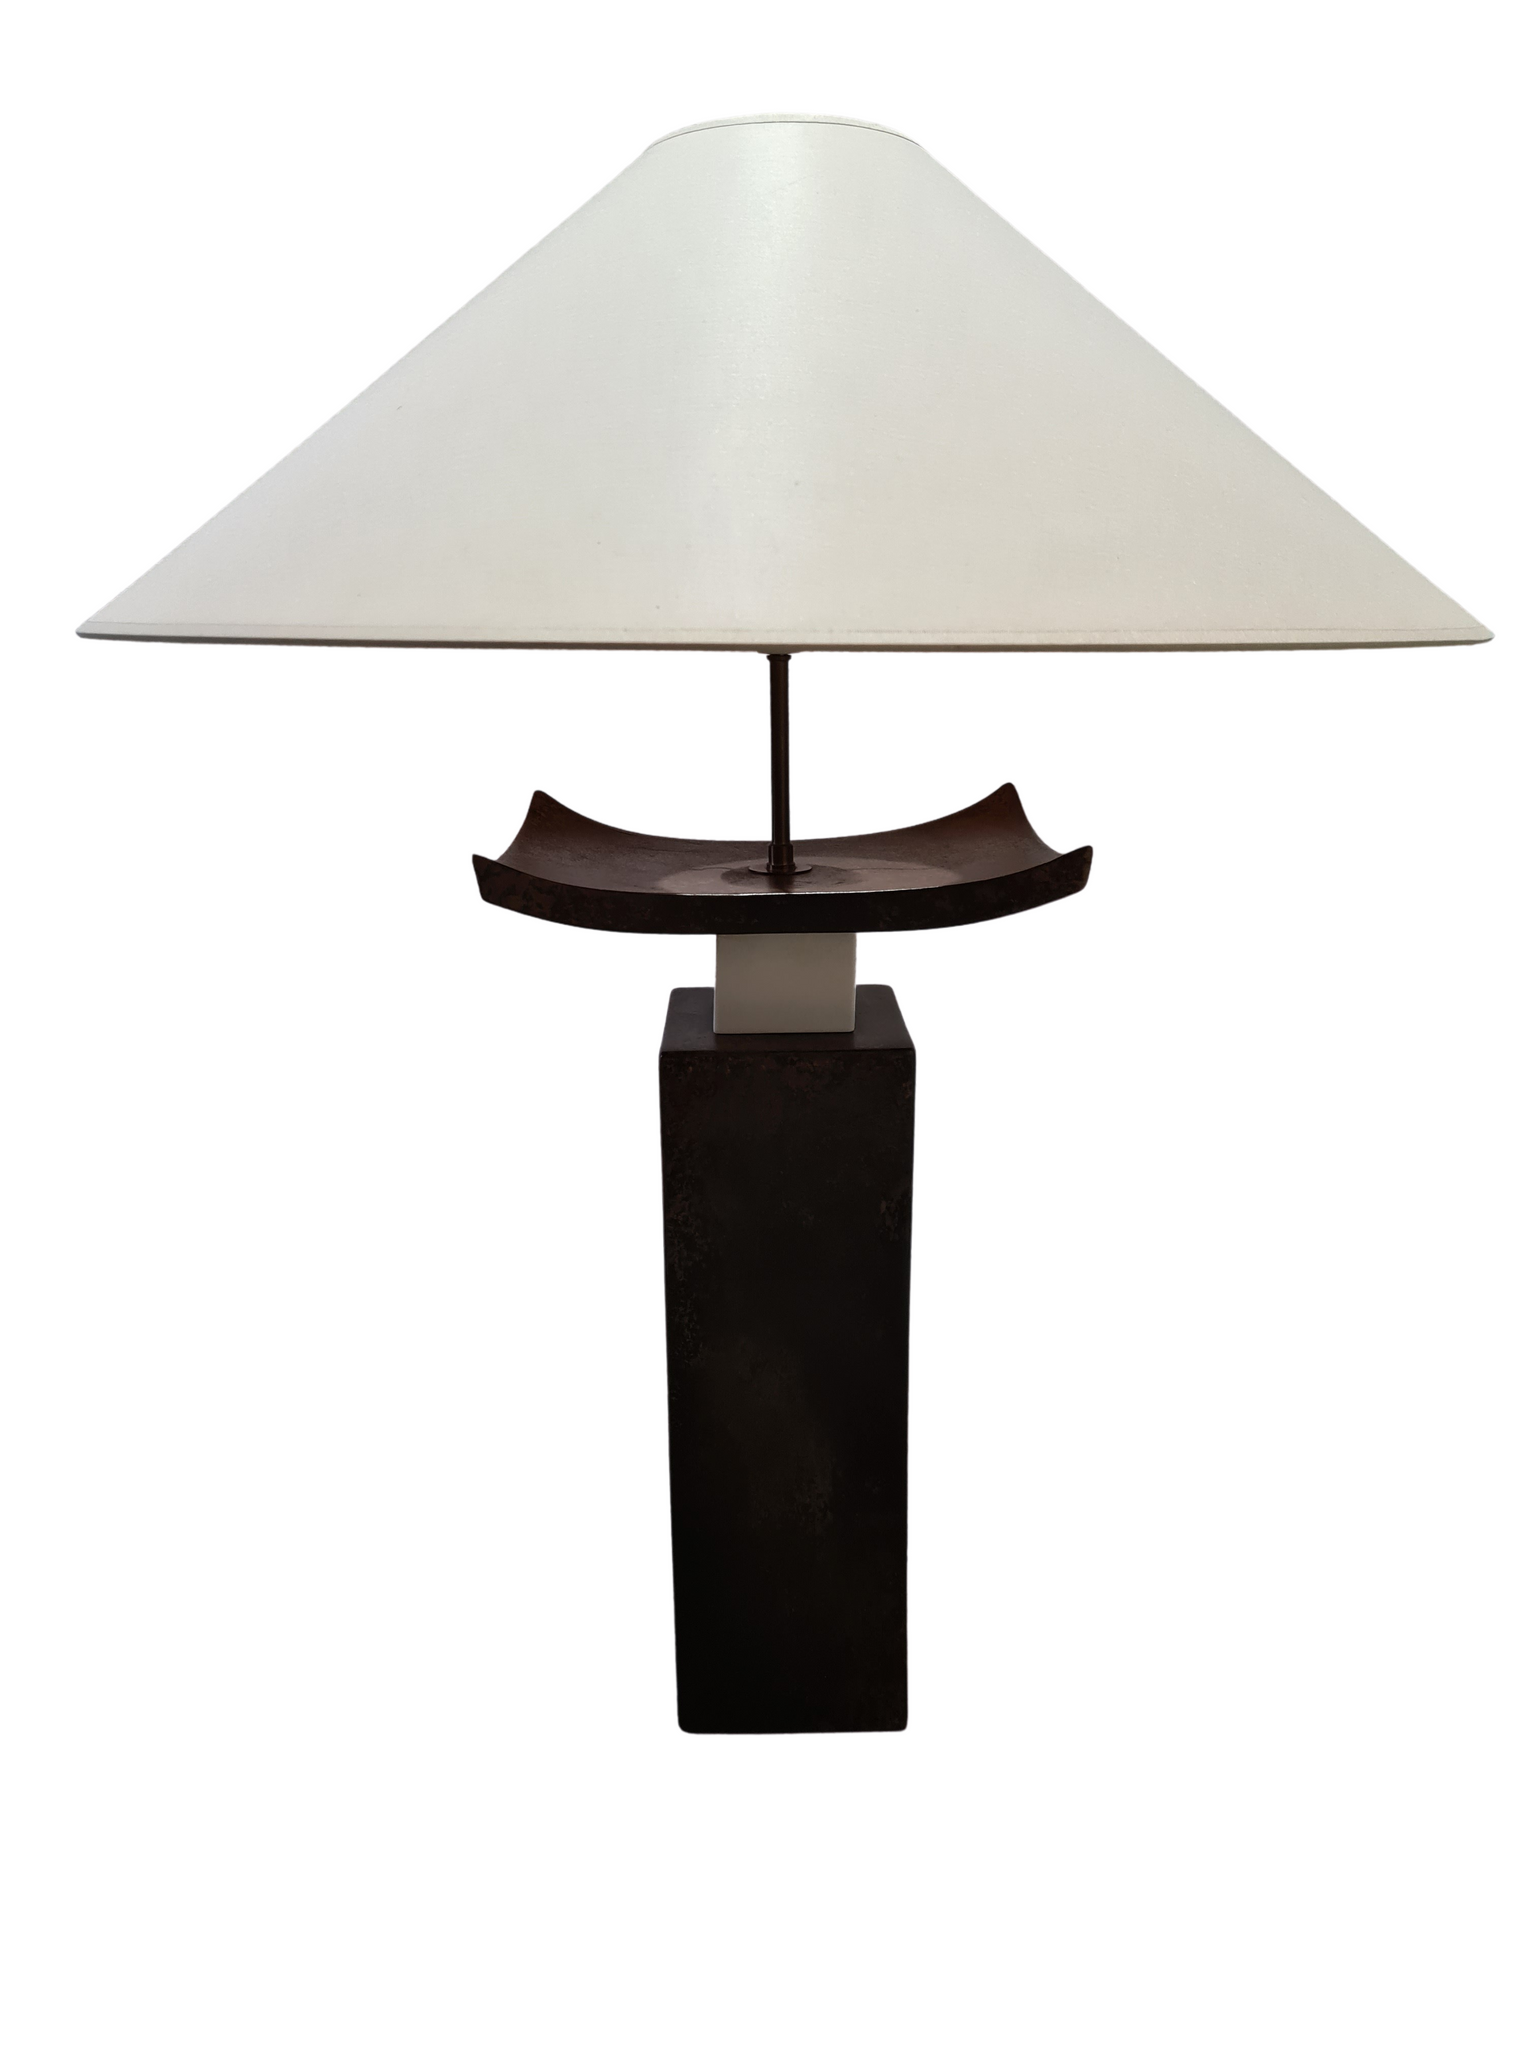 Tweedehands design Grote Francois Chatain keramiek lamp model Chinese Tempel, jaren 70